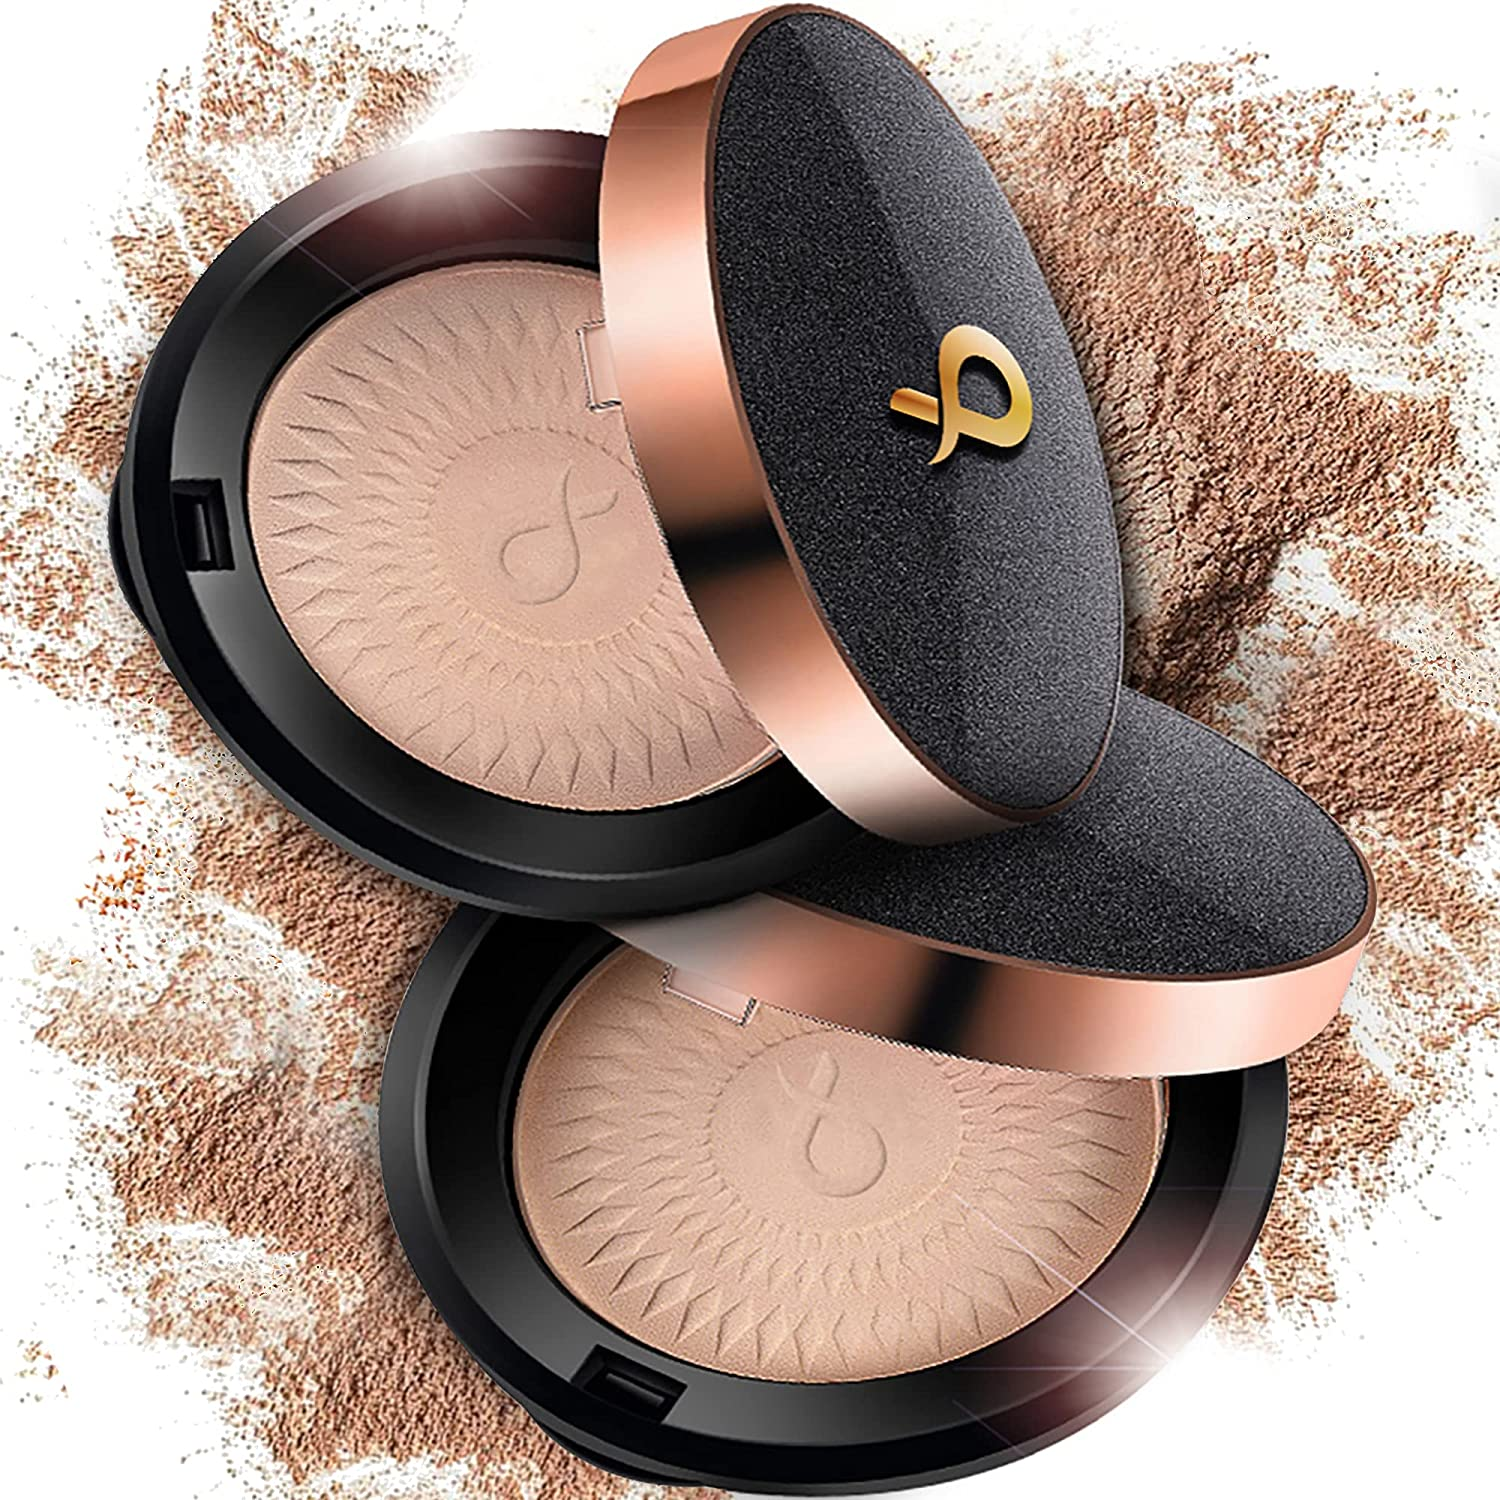 Raleigh Mall Belgrande Face Powder. Velvety New Orleans Mall Soft Translucent Fits all Skin. -